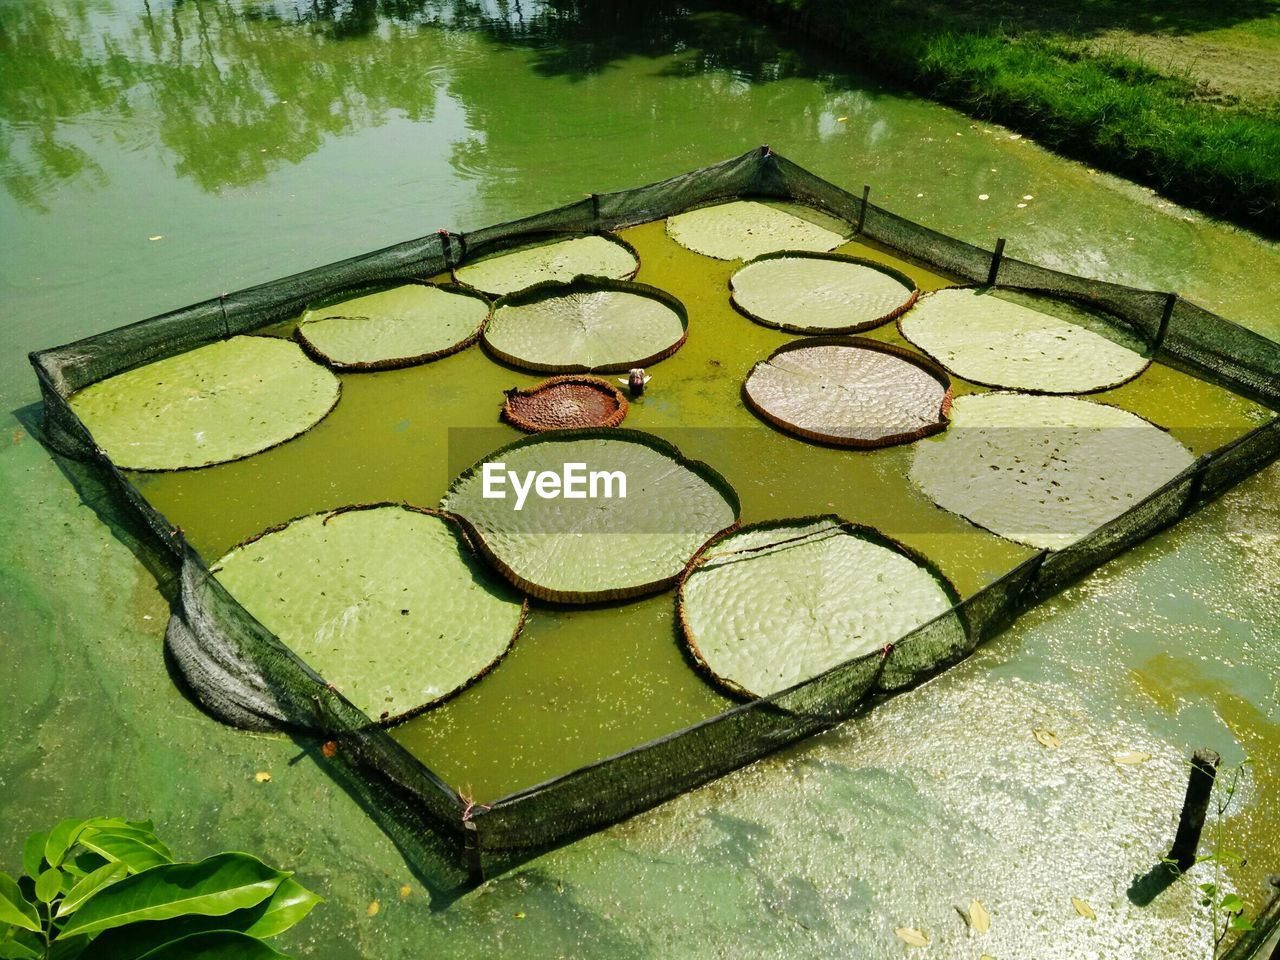 water, high angle view, no people, reflection, day, floating on water, outdoors, lily pad, nature, close-up, freshness